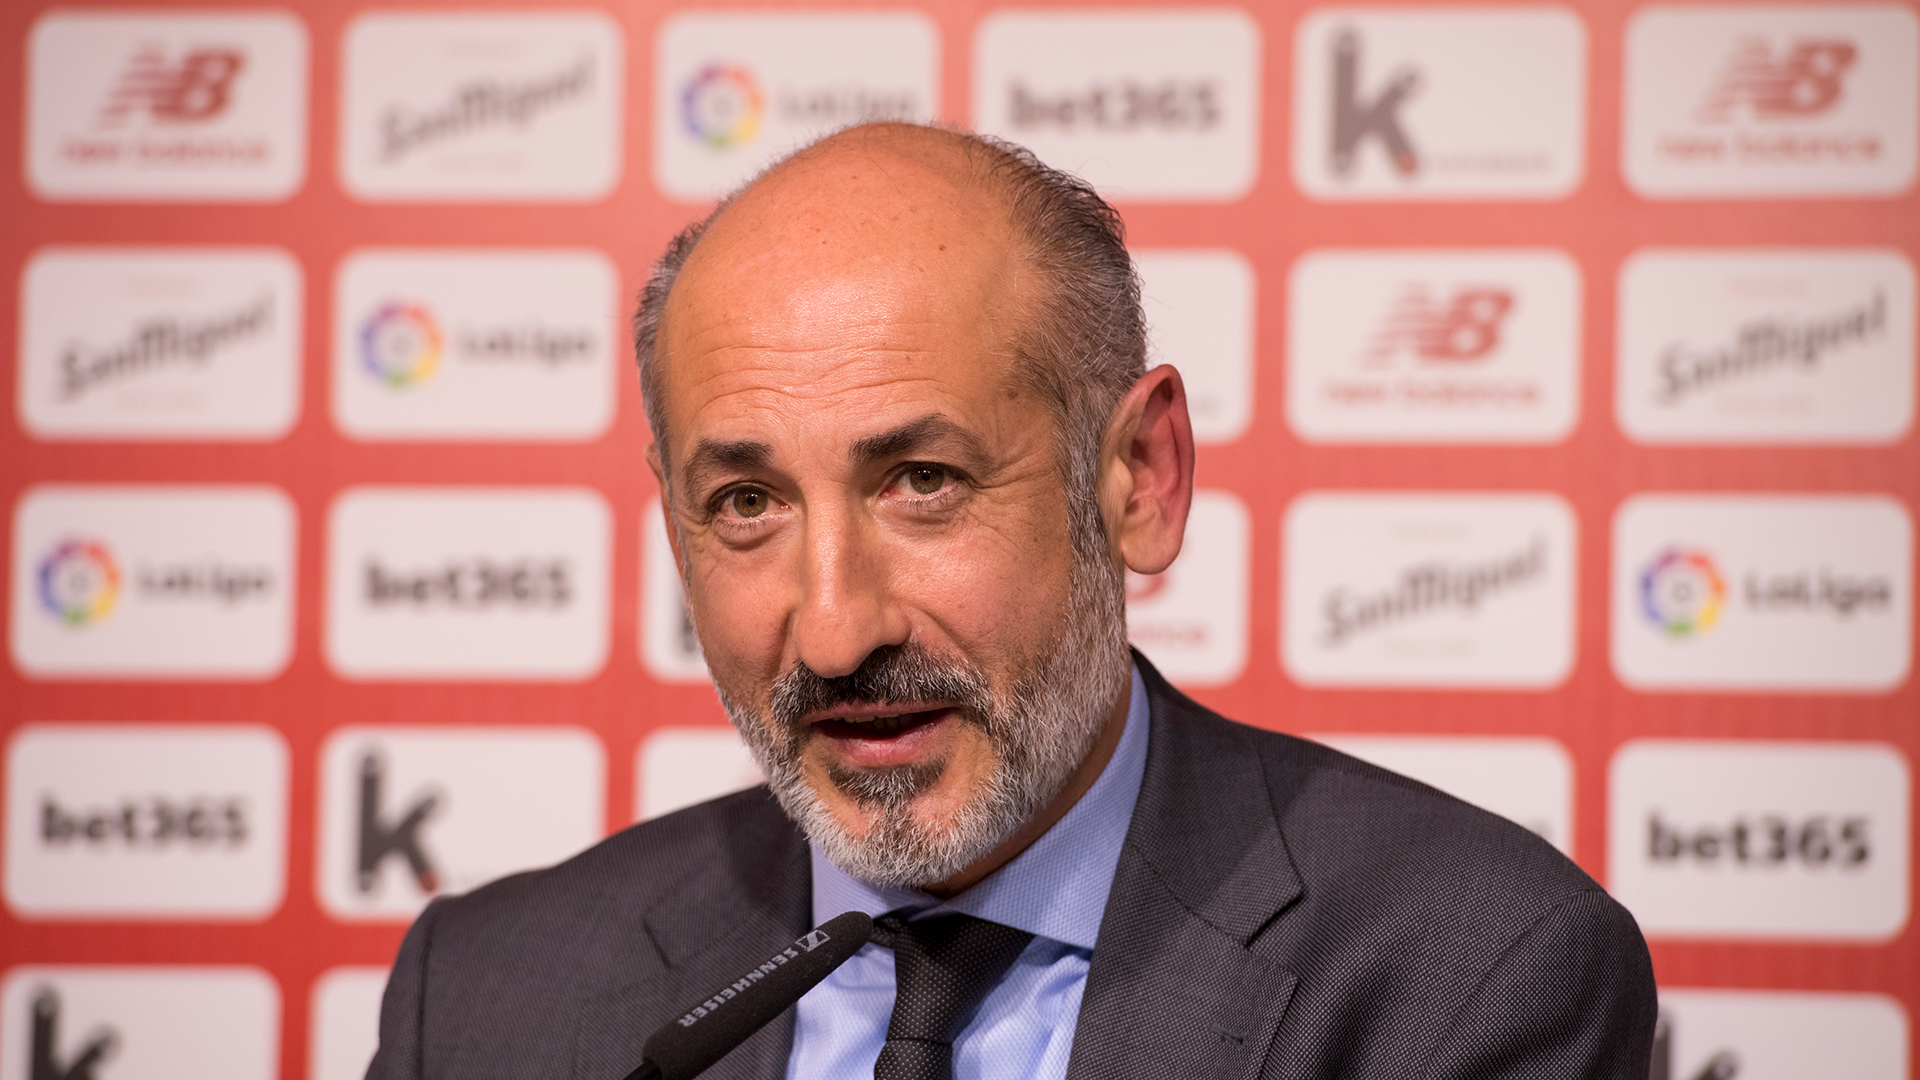 Aitor Elizegi to hold press conference